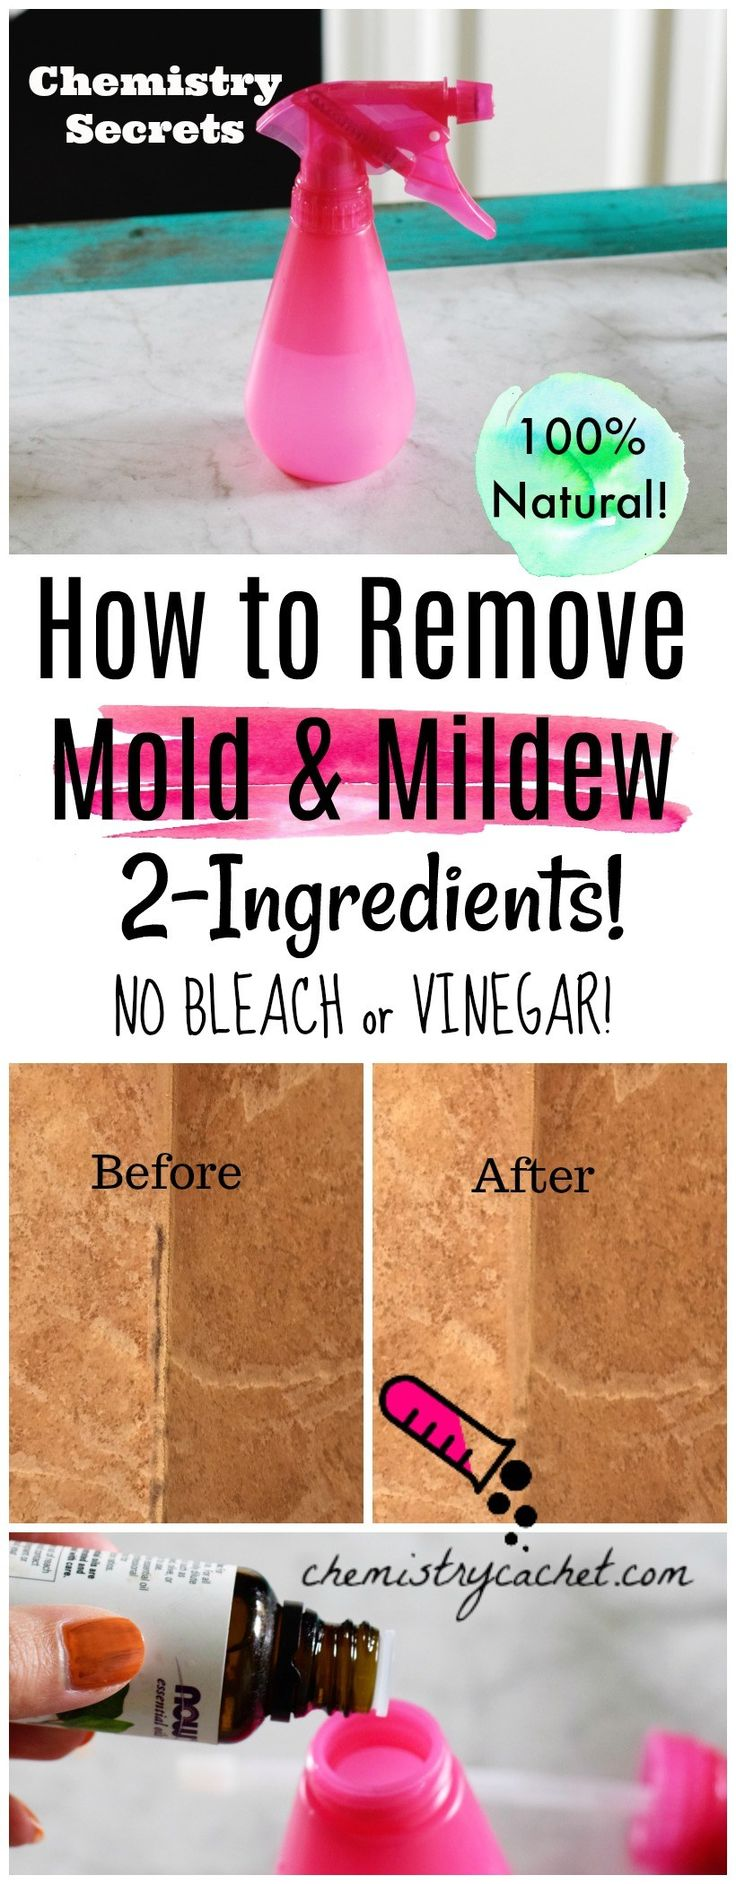 The Best Way to Remove Mold & Mildew Naturally! No Bleach, No vinegar. Just 2 ingredients! Water and tea tree oil - on chemistrycachet.com